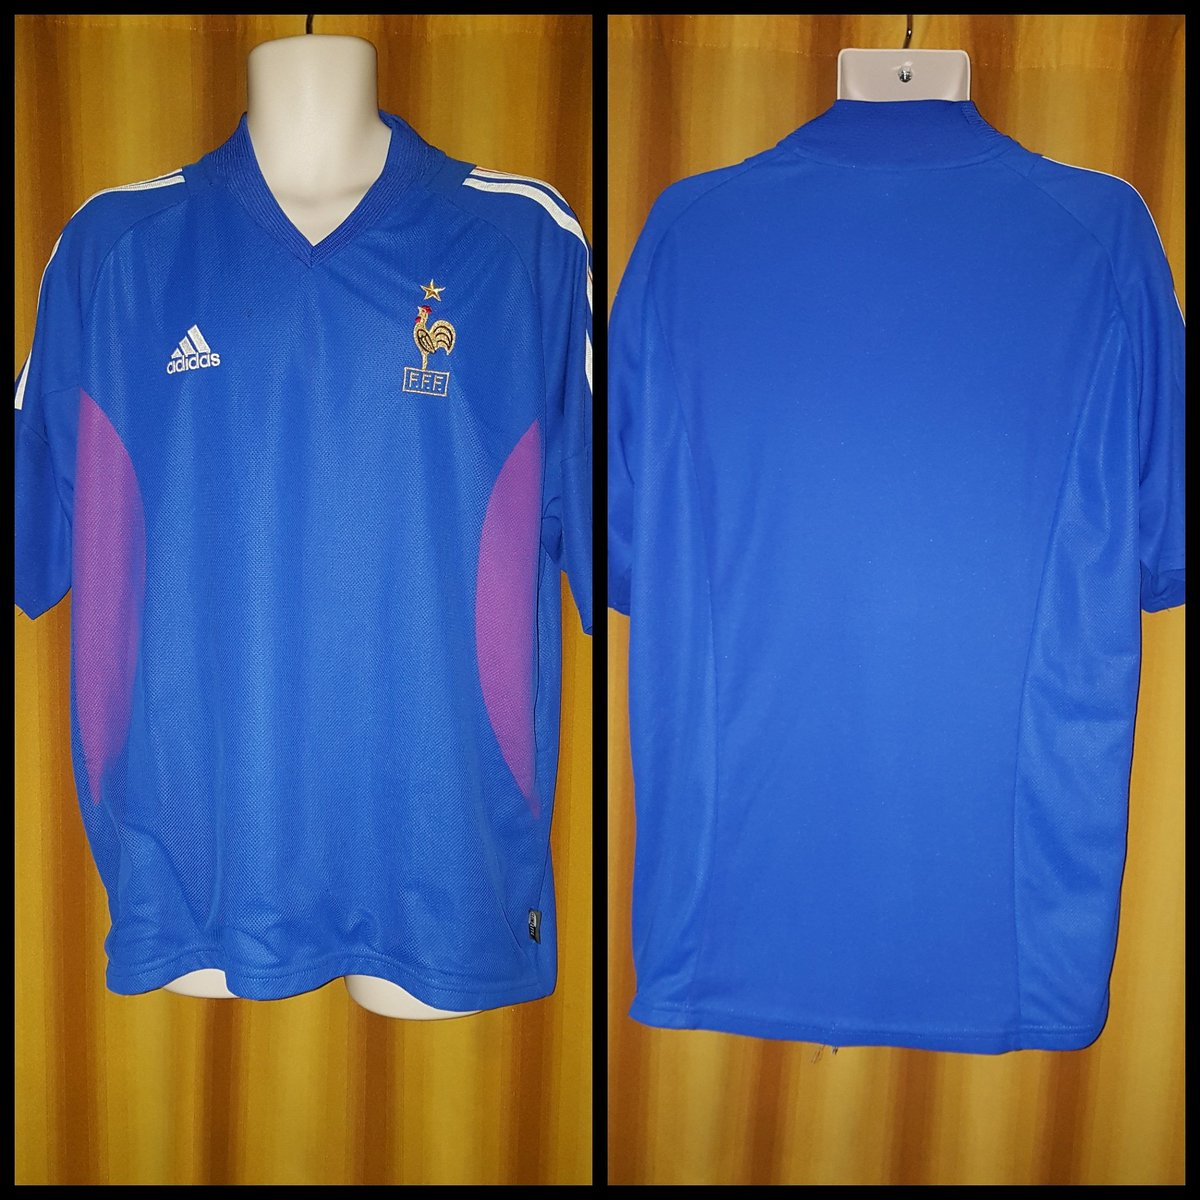 Today's shirt in focus is the:#FRA 2002-03 Home Shirt by #Adidas!